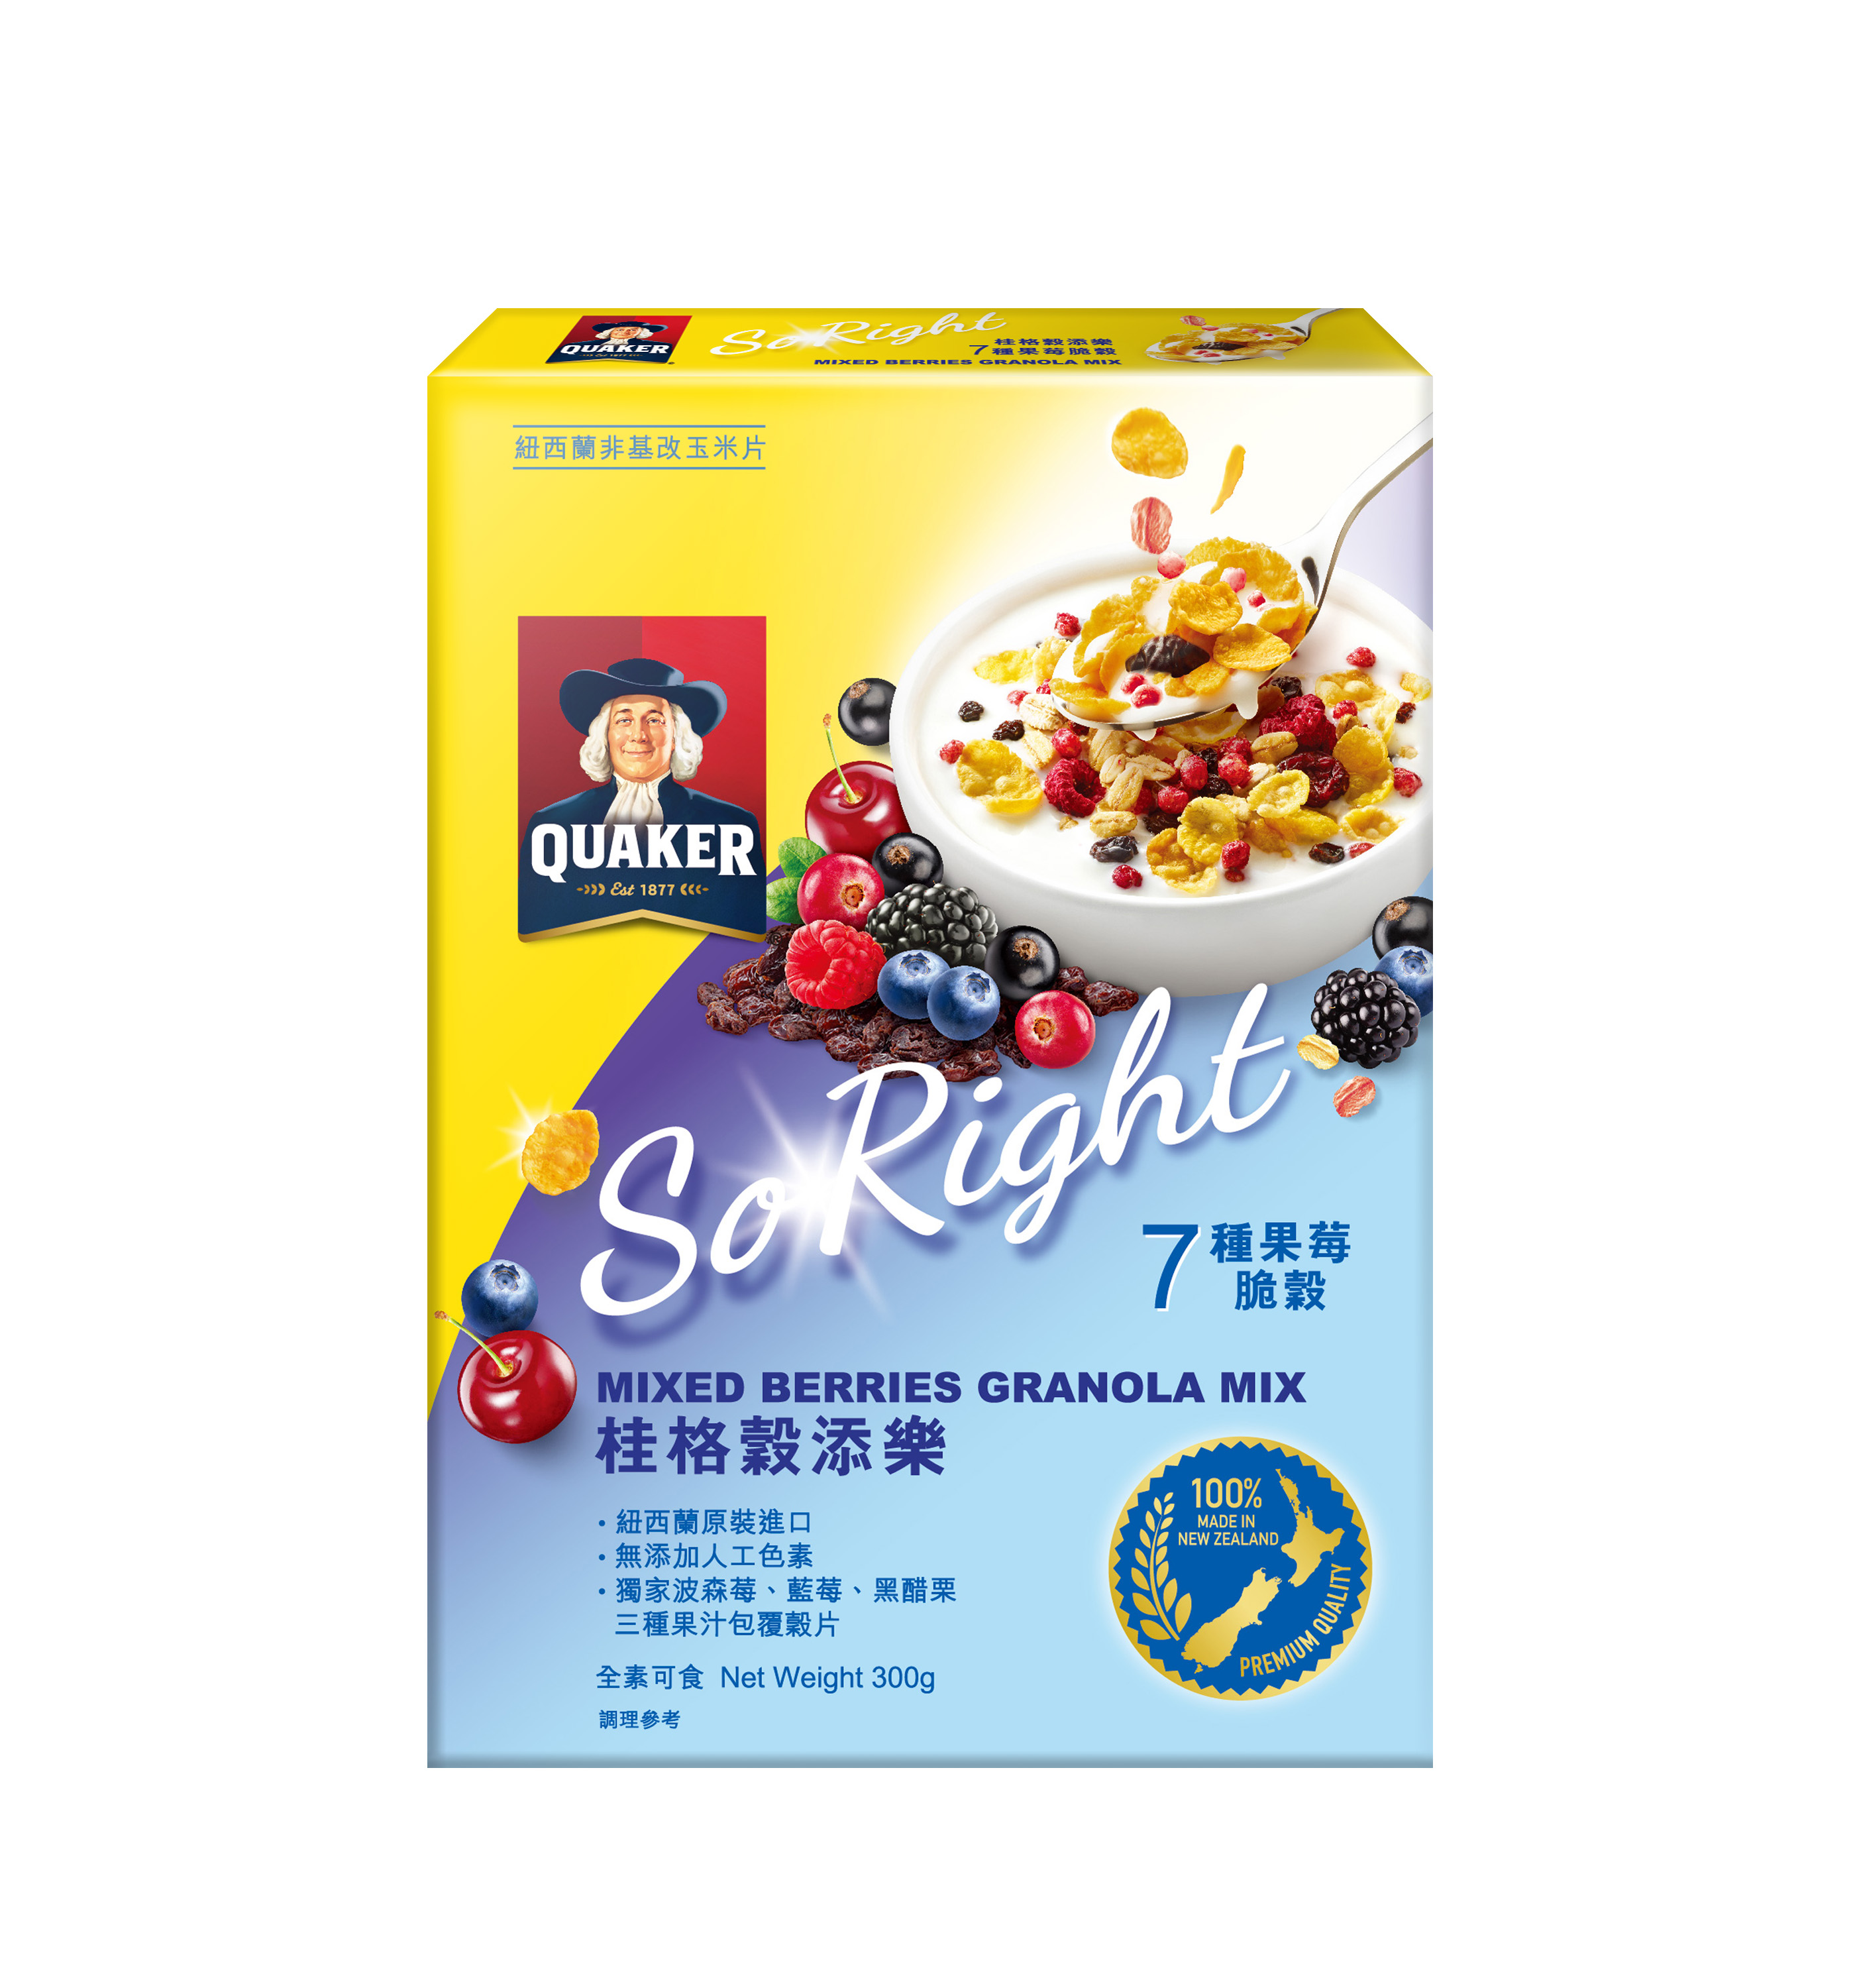 Q SoRight_7 Berries pack_202001.jpg